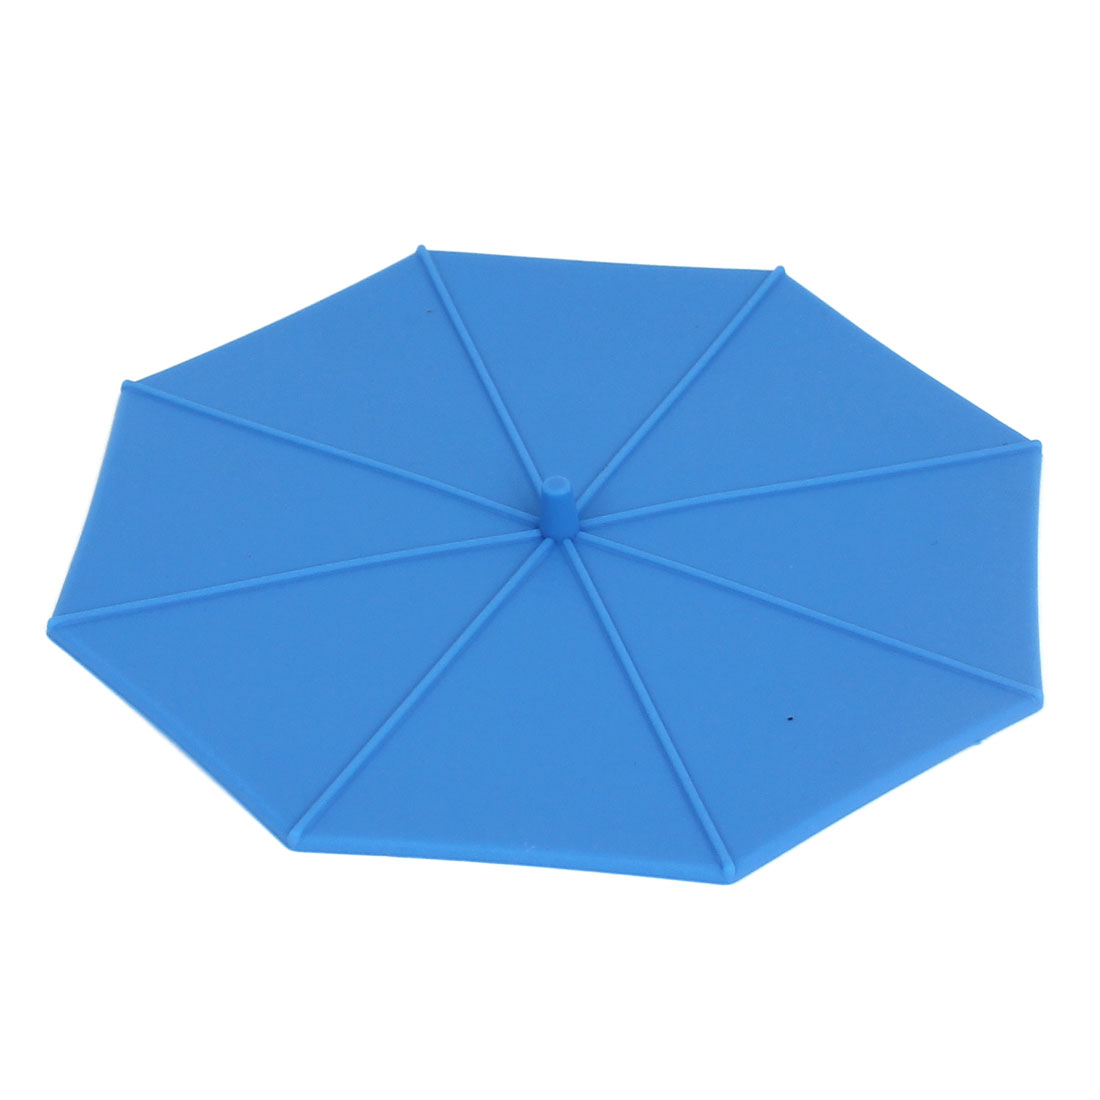 Umbrella Shape Coffe Tea Water Cup Silicone Seal Airtight Cover Cap Lip Blue